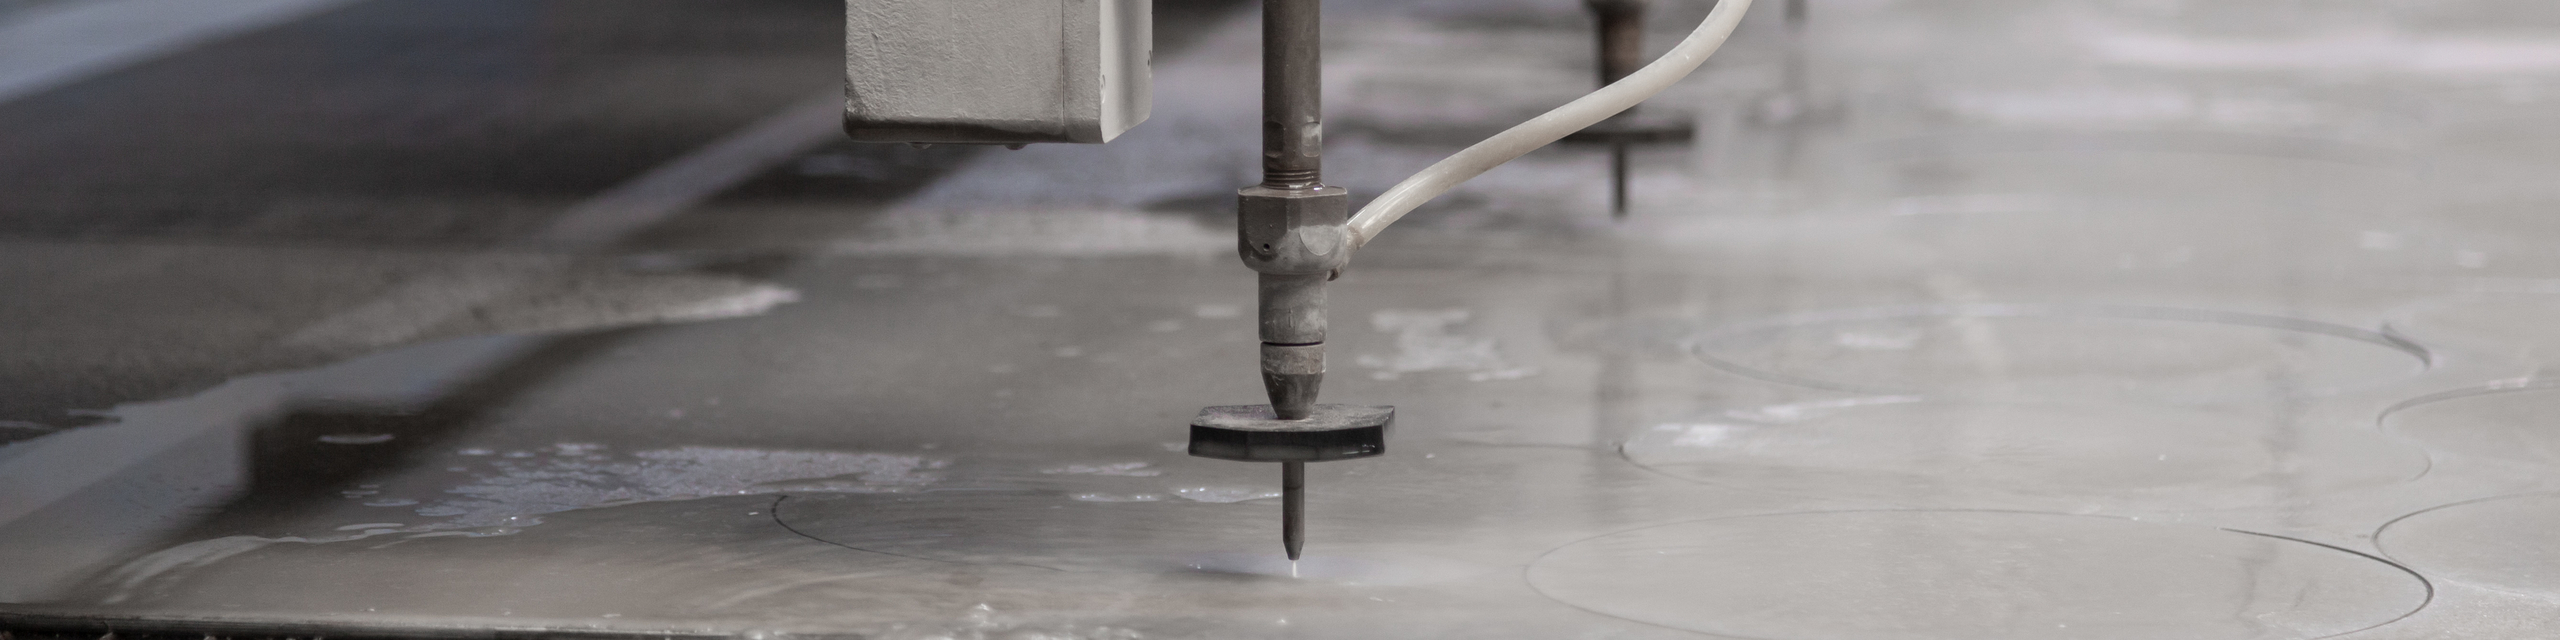 Industrial water jet cutting